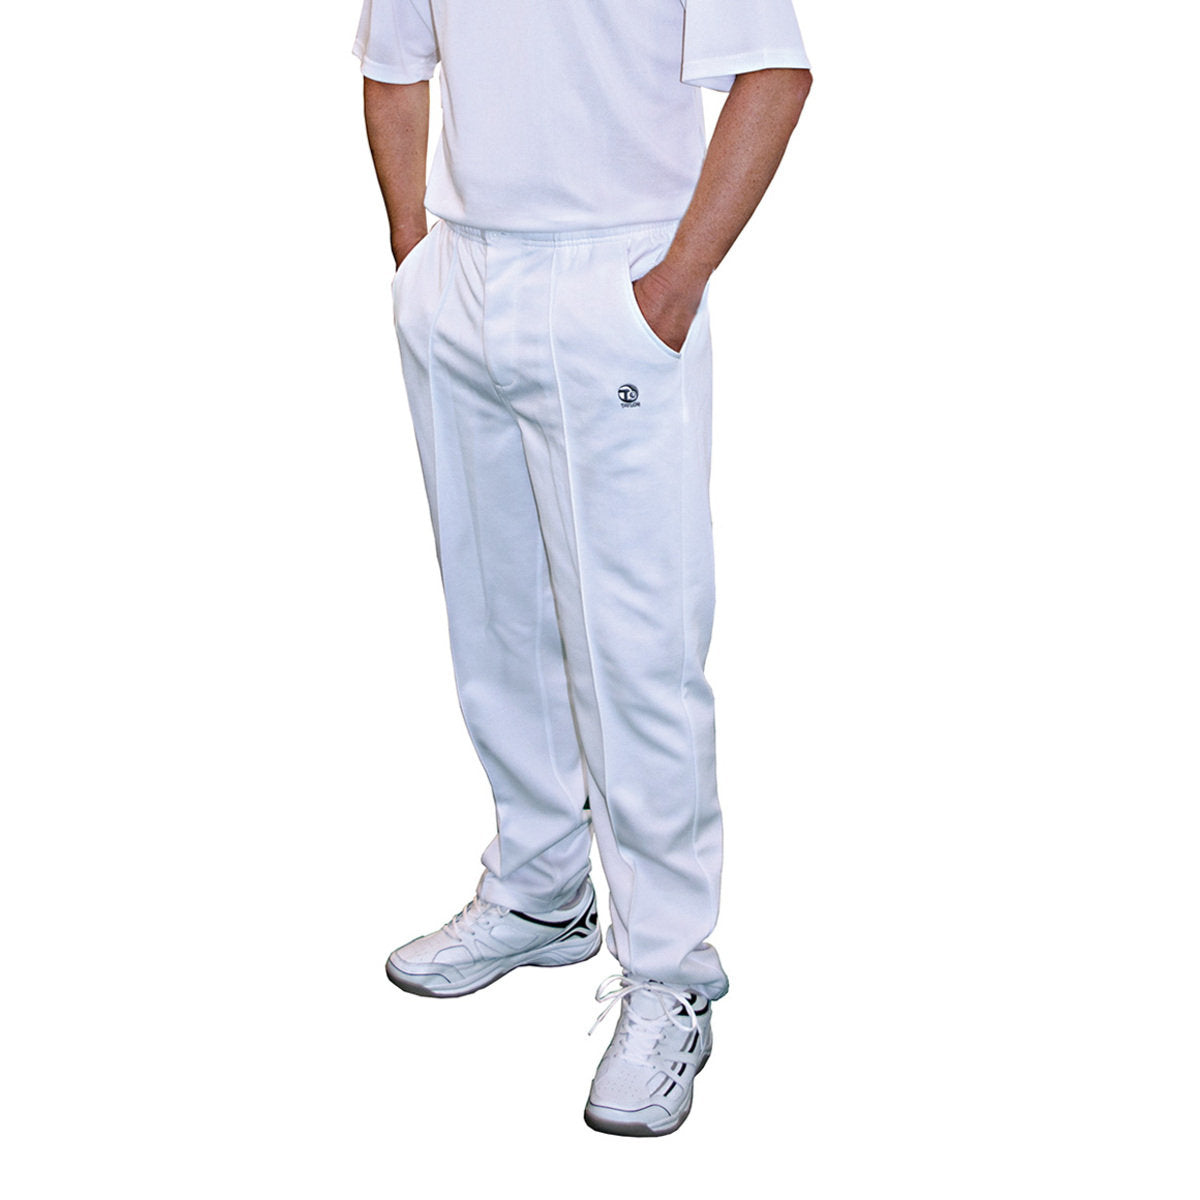 Taylor Gents White Sports Trousers